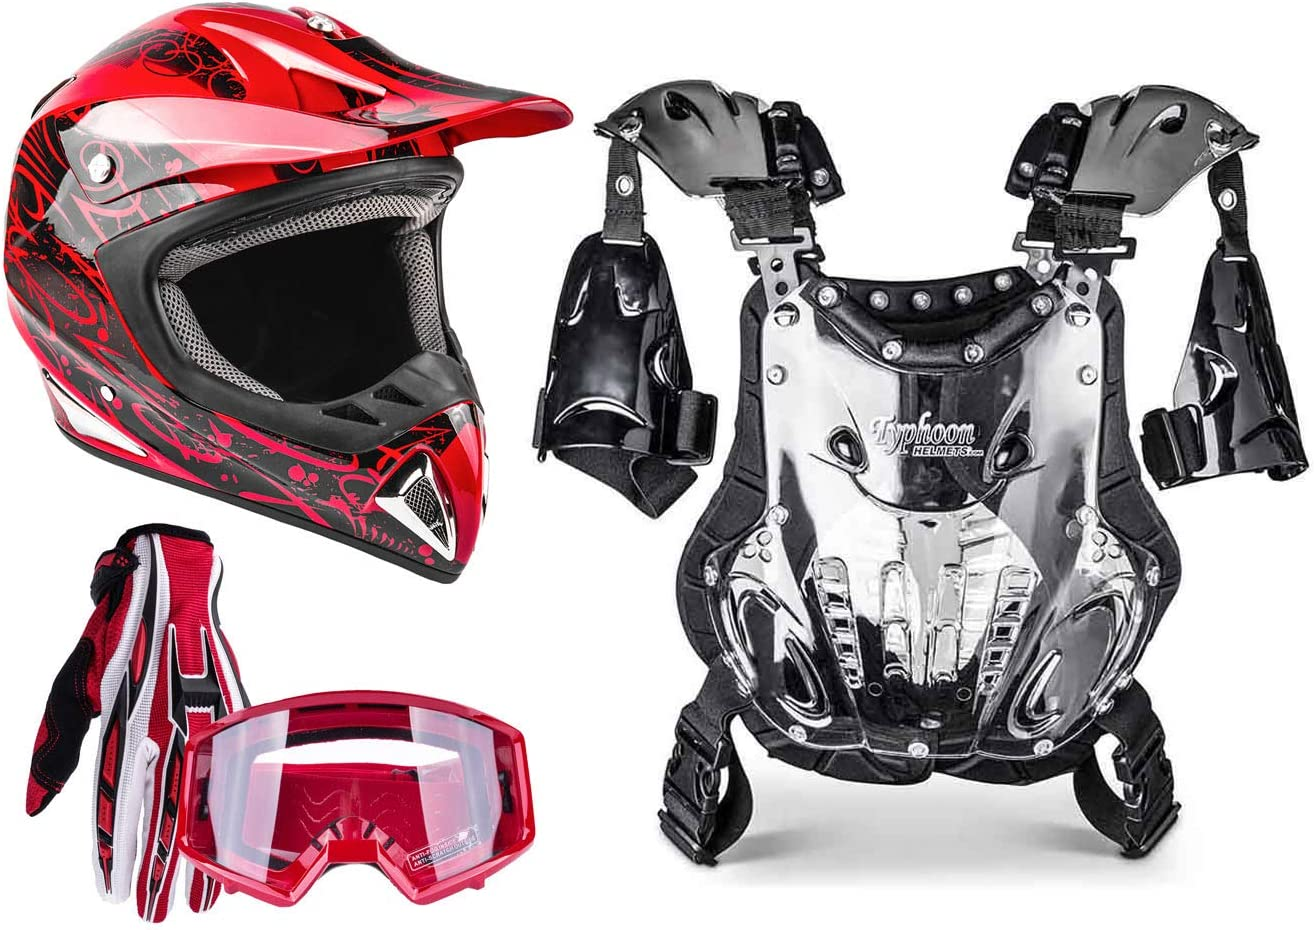 Adult Offroad Helmet Goggles Gloves Combo Max Courier shipping free shipping 54% OFF Chest Gear M Protector